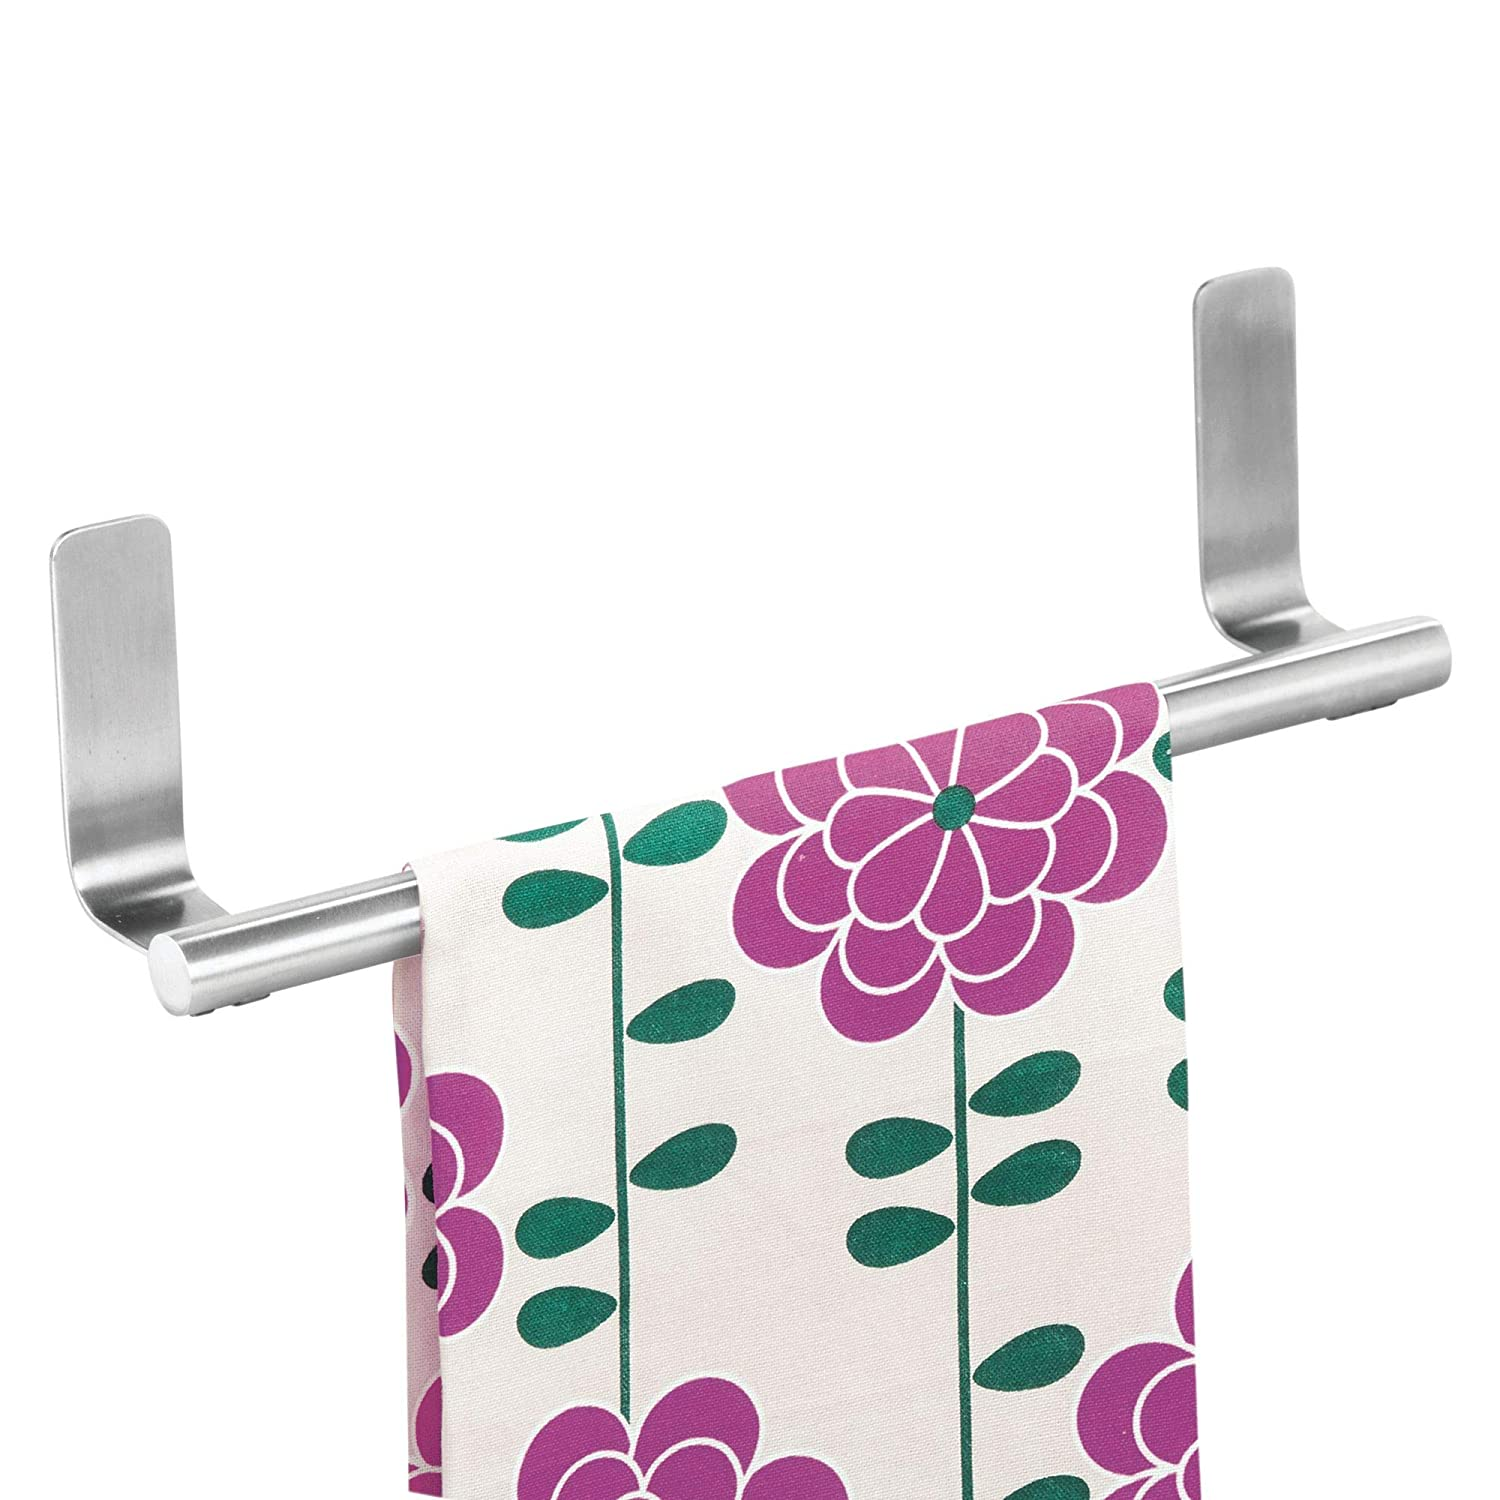 82700 InterDesign Forma Self-Adhesive Towel Bar Holder for Bathroom or Kitchen Stainless Steel